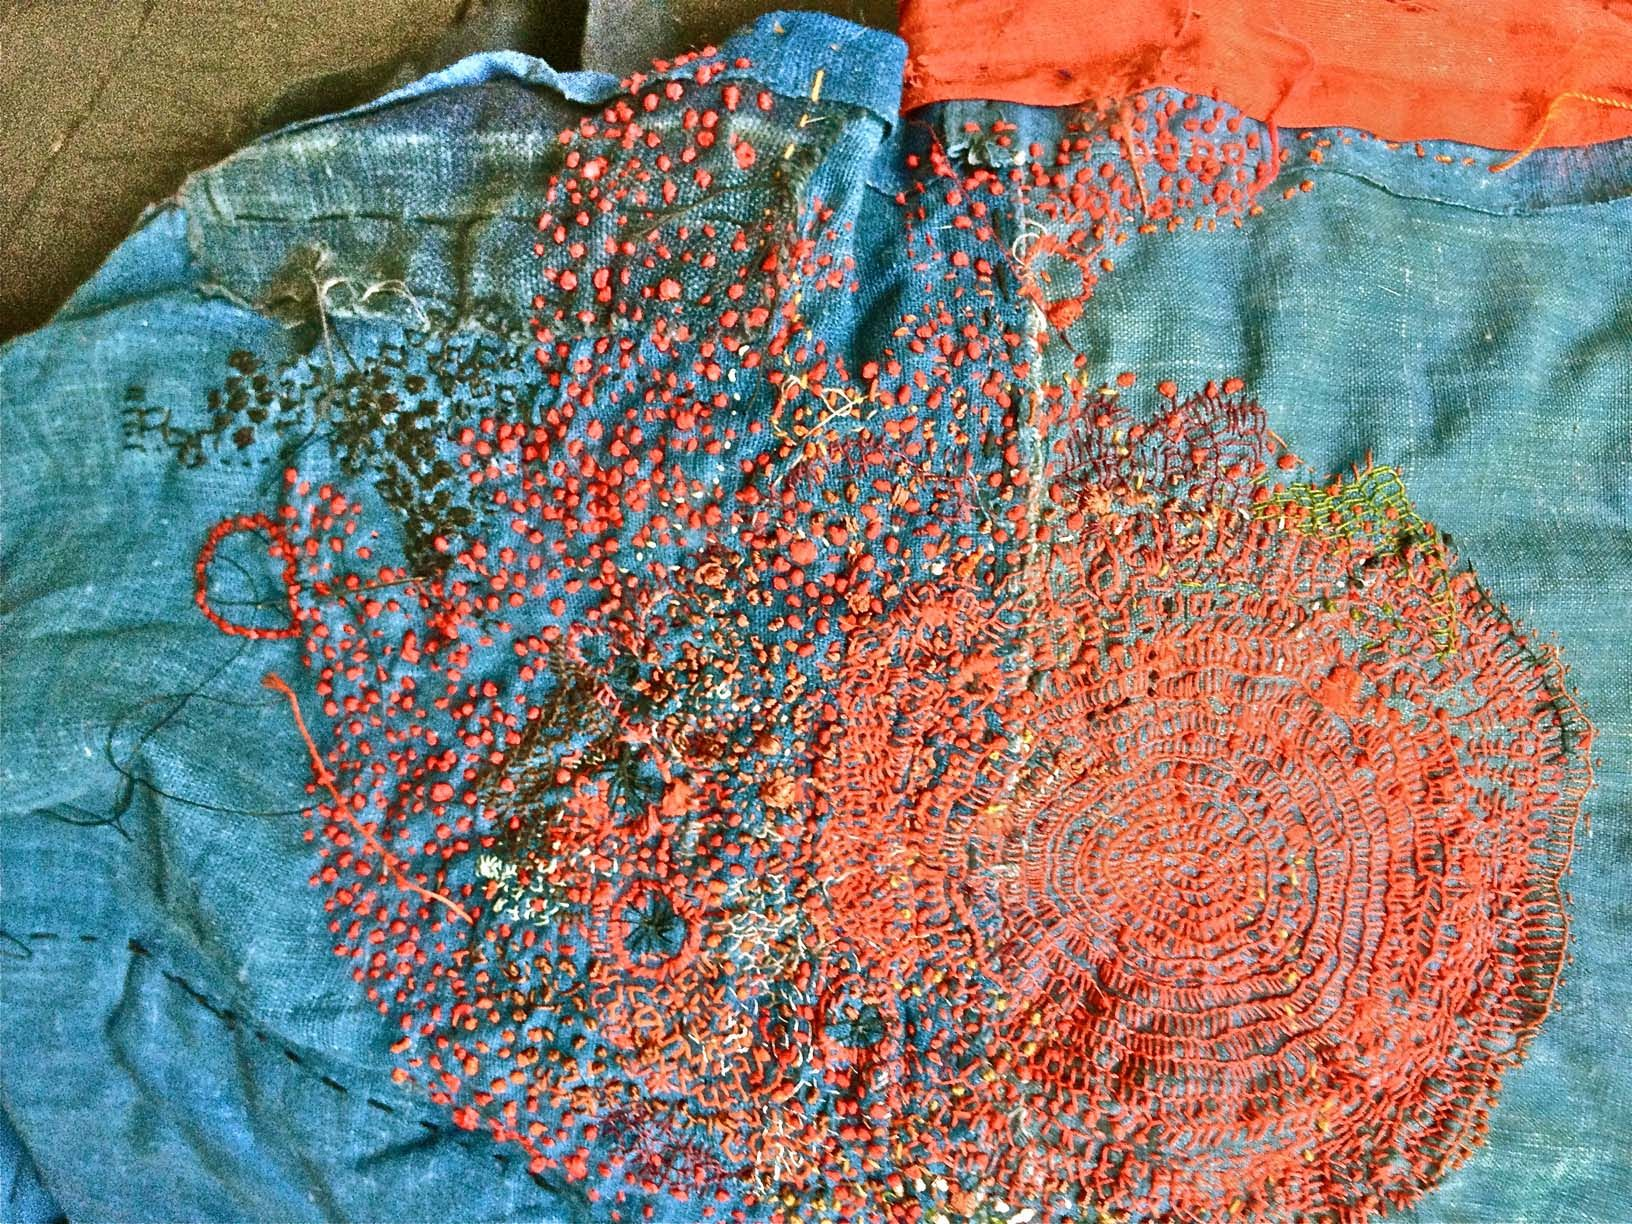 dots / junko oki I have begun to embroider on a light denim shirt using her colors and same stitches. I am having conceptual trouble with the blanket stitch..embroidering it in a spiral or circle with the spokes pointing out. It is pretty funny. I know I can do it. These are the brain hurdles I hoped I could reach. TaDAAA!